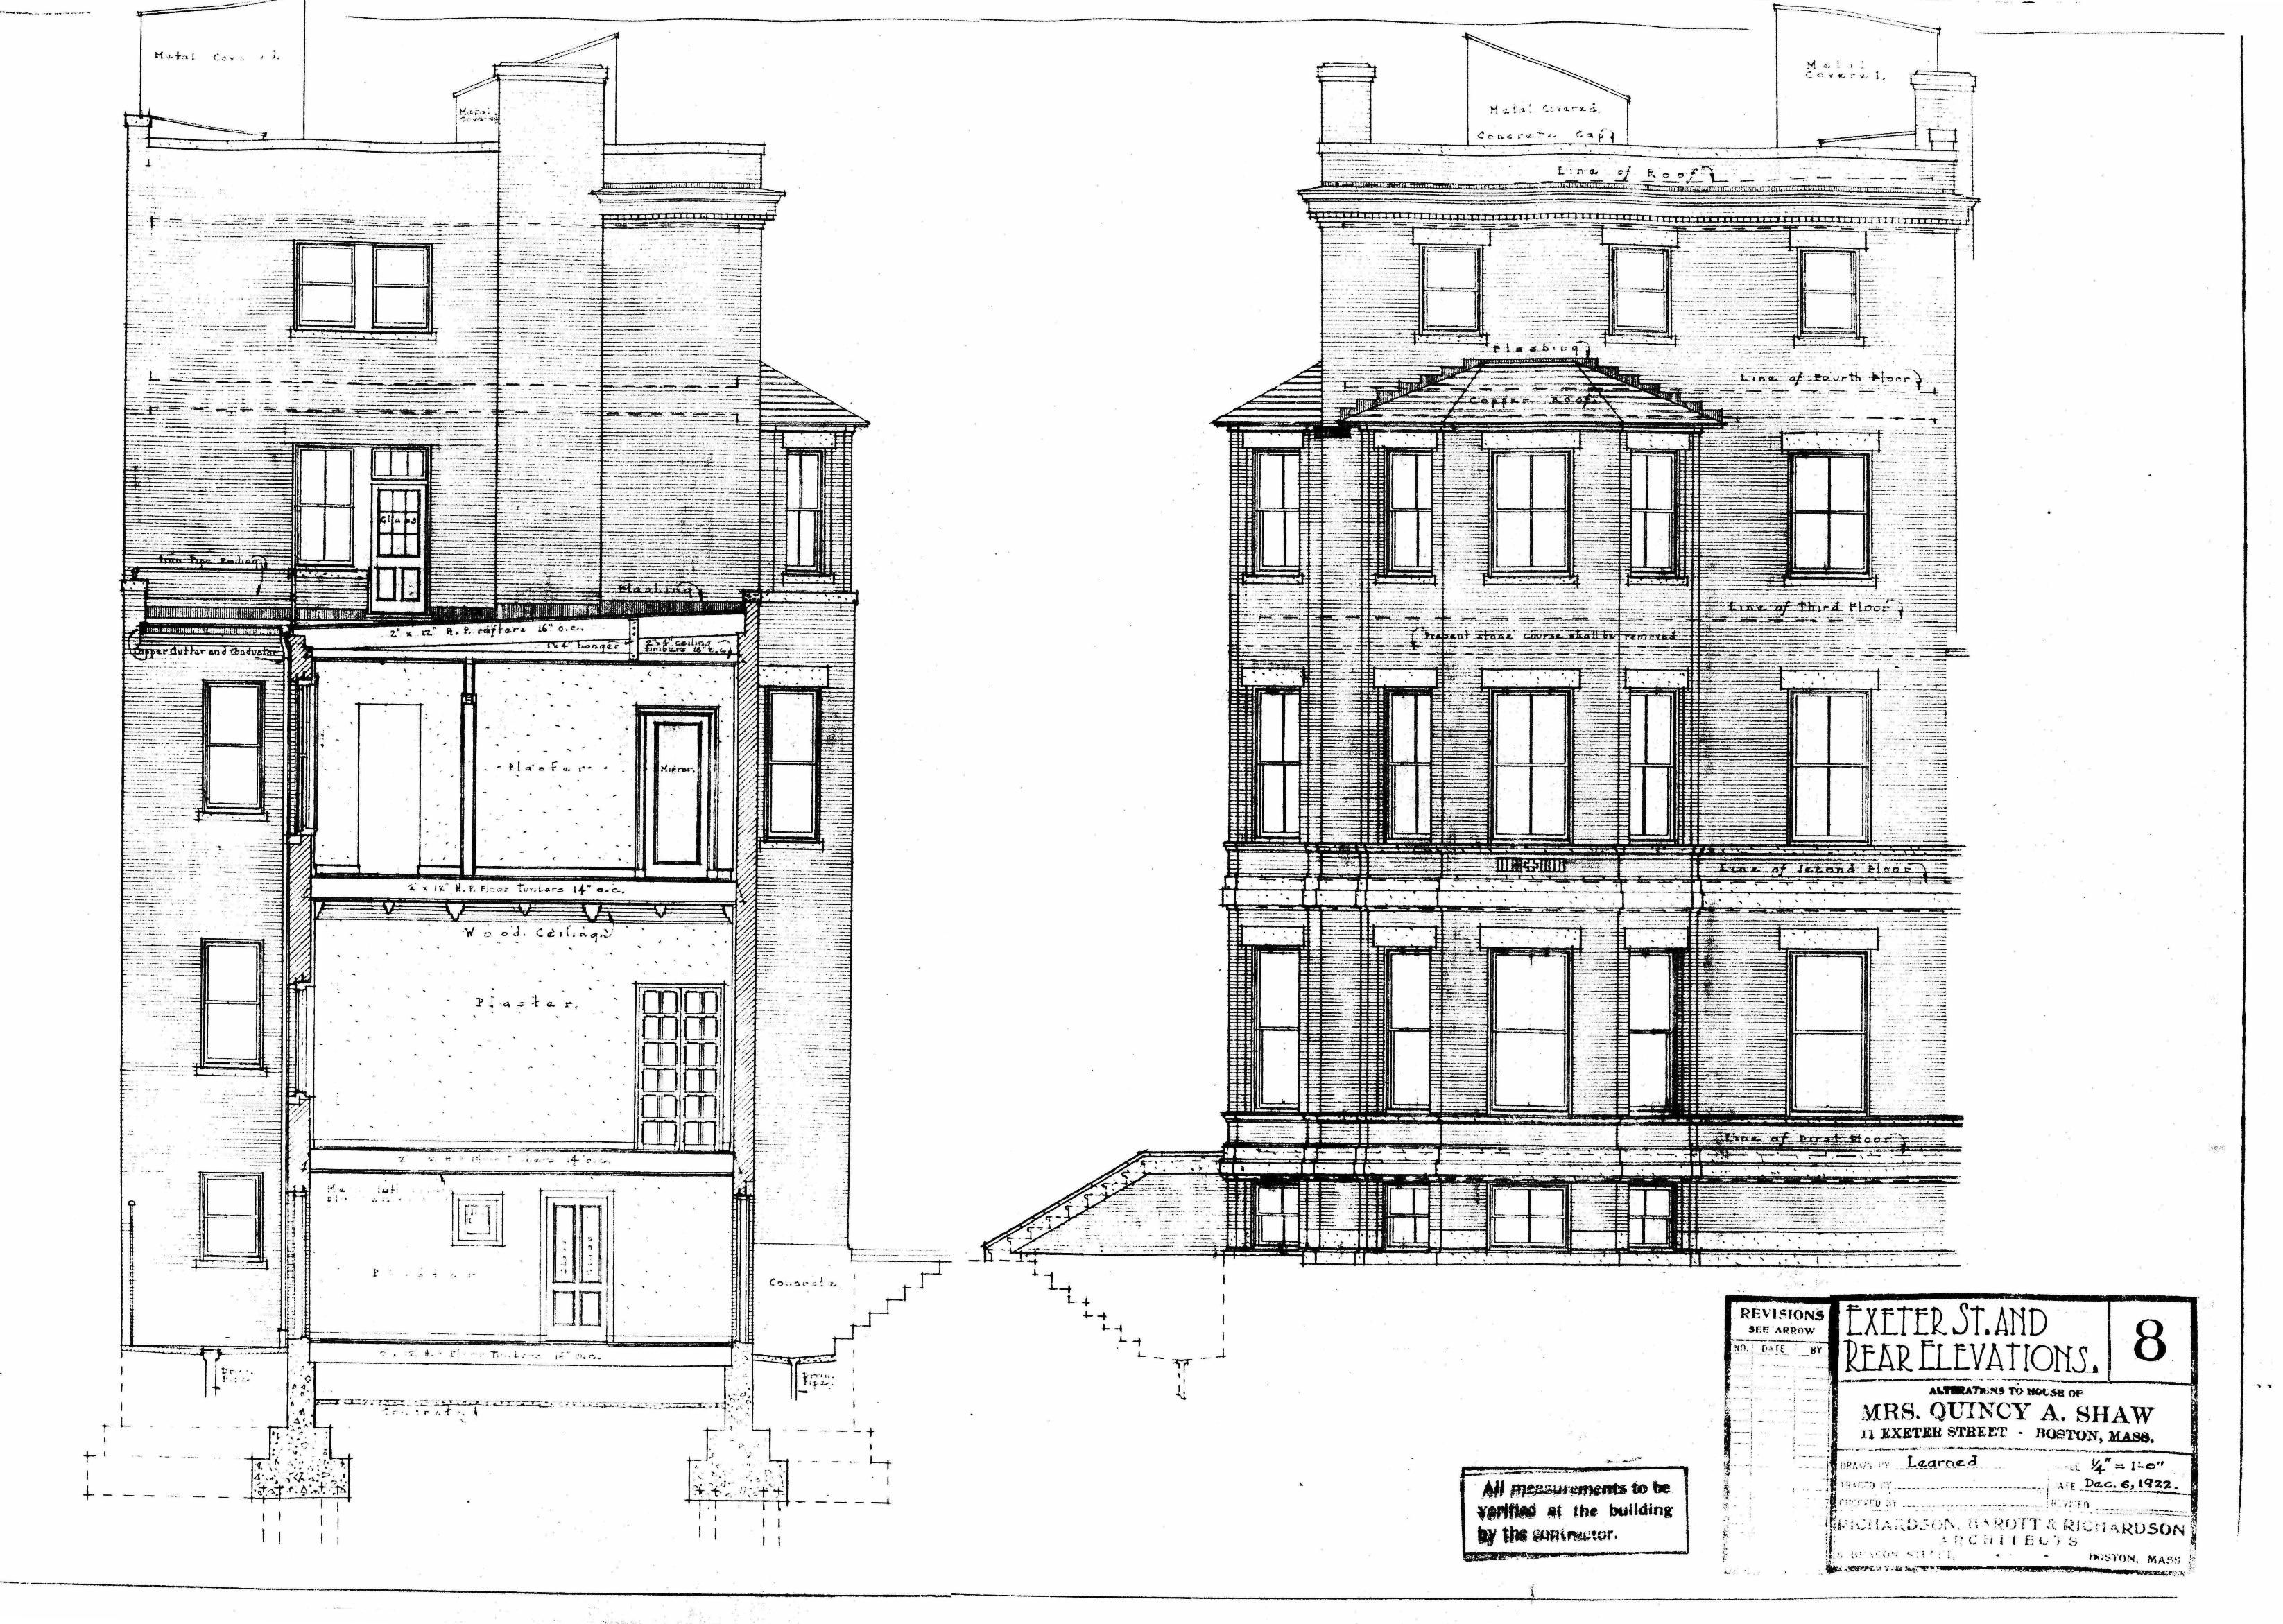 11 exeter back bay houses boston blueprints collection rendering of exeter st and western faades by architects richardson barott and malvernweather Choice Image